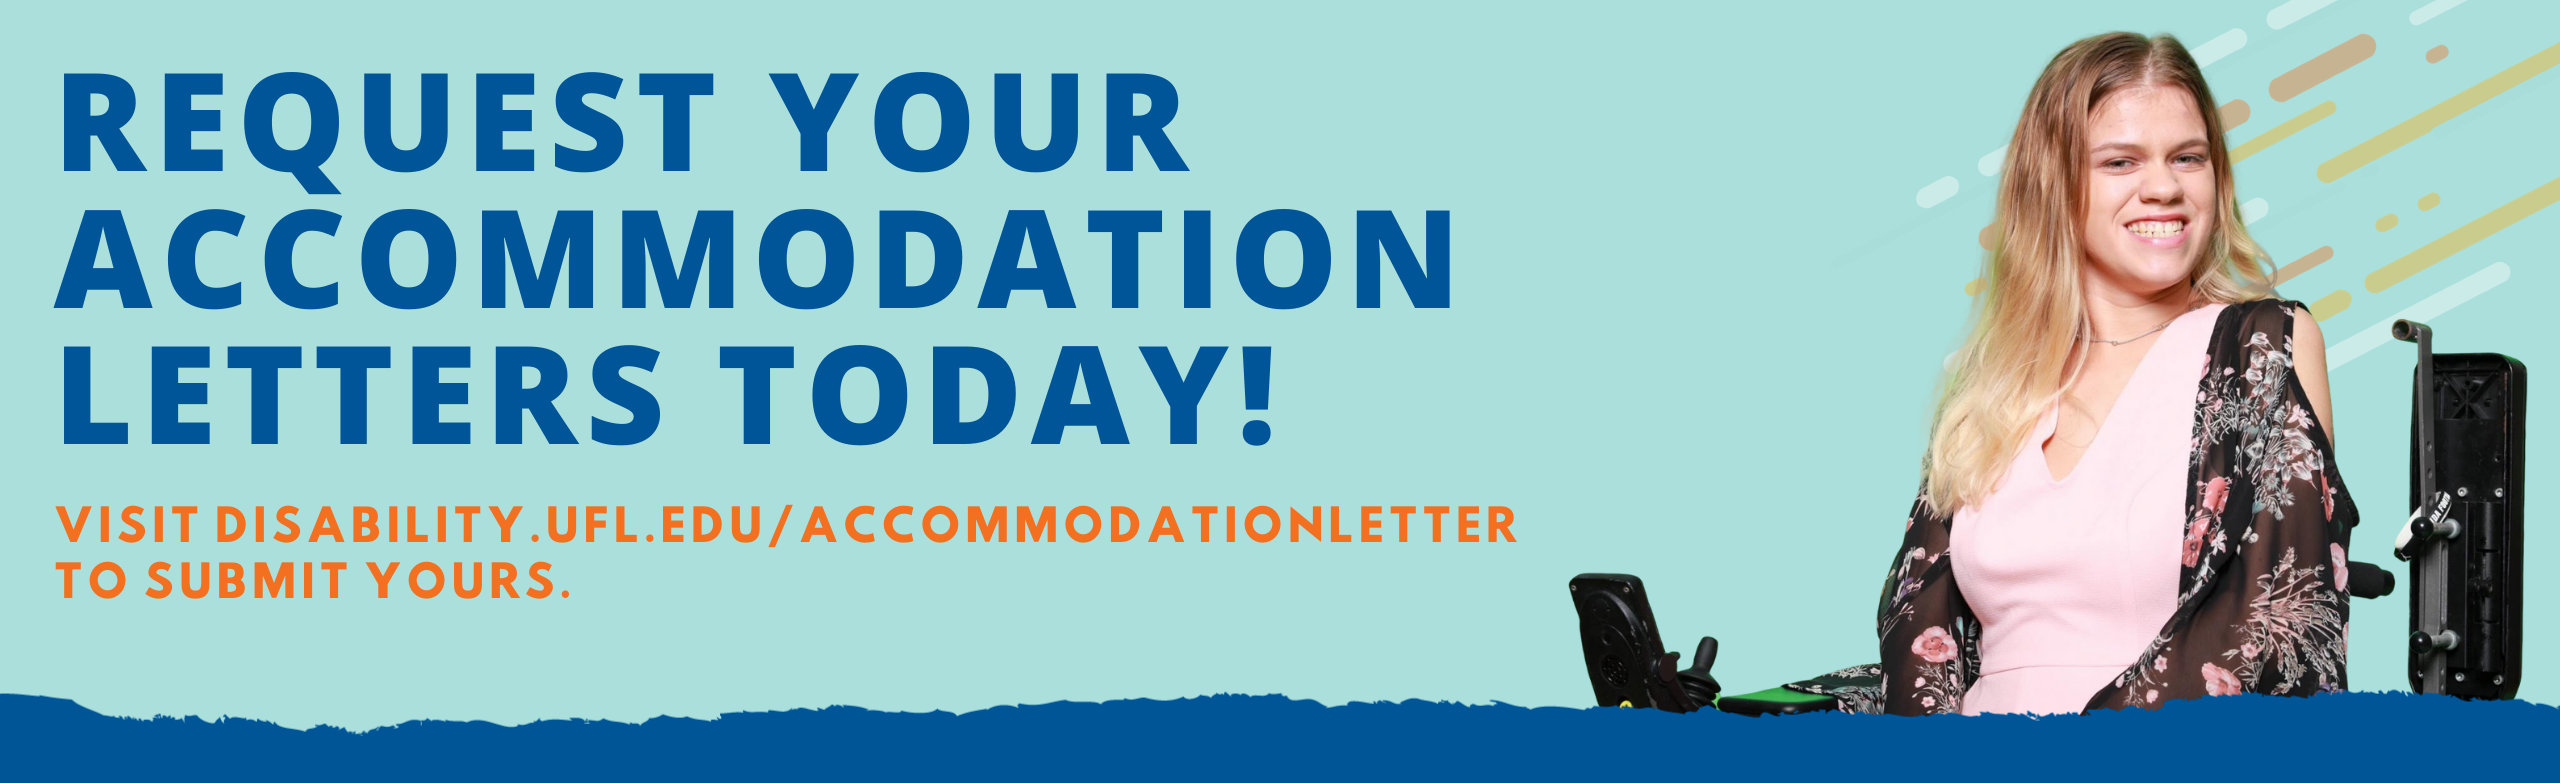 Request your accommodation letter today! Visit disability.ufl.edu/accommodationletter to submit yours. https://disability.ufl.edu/accommodationletter